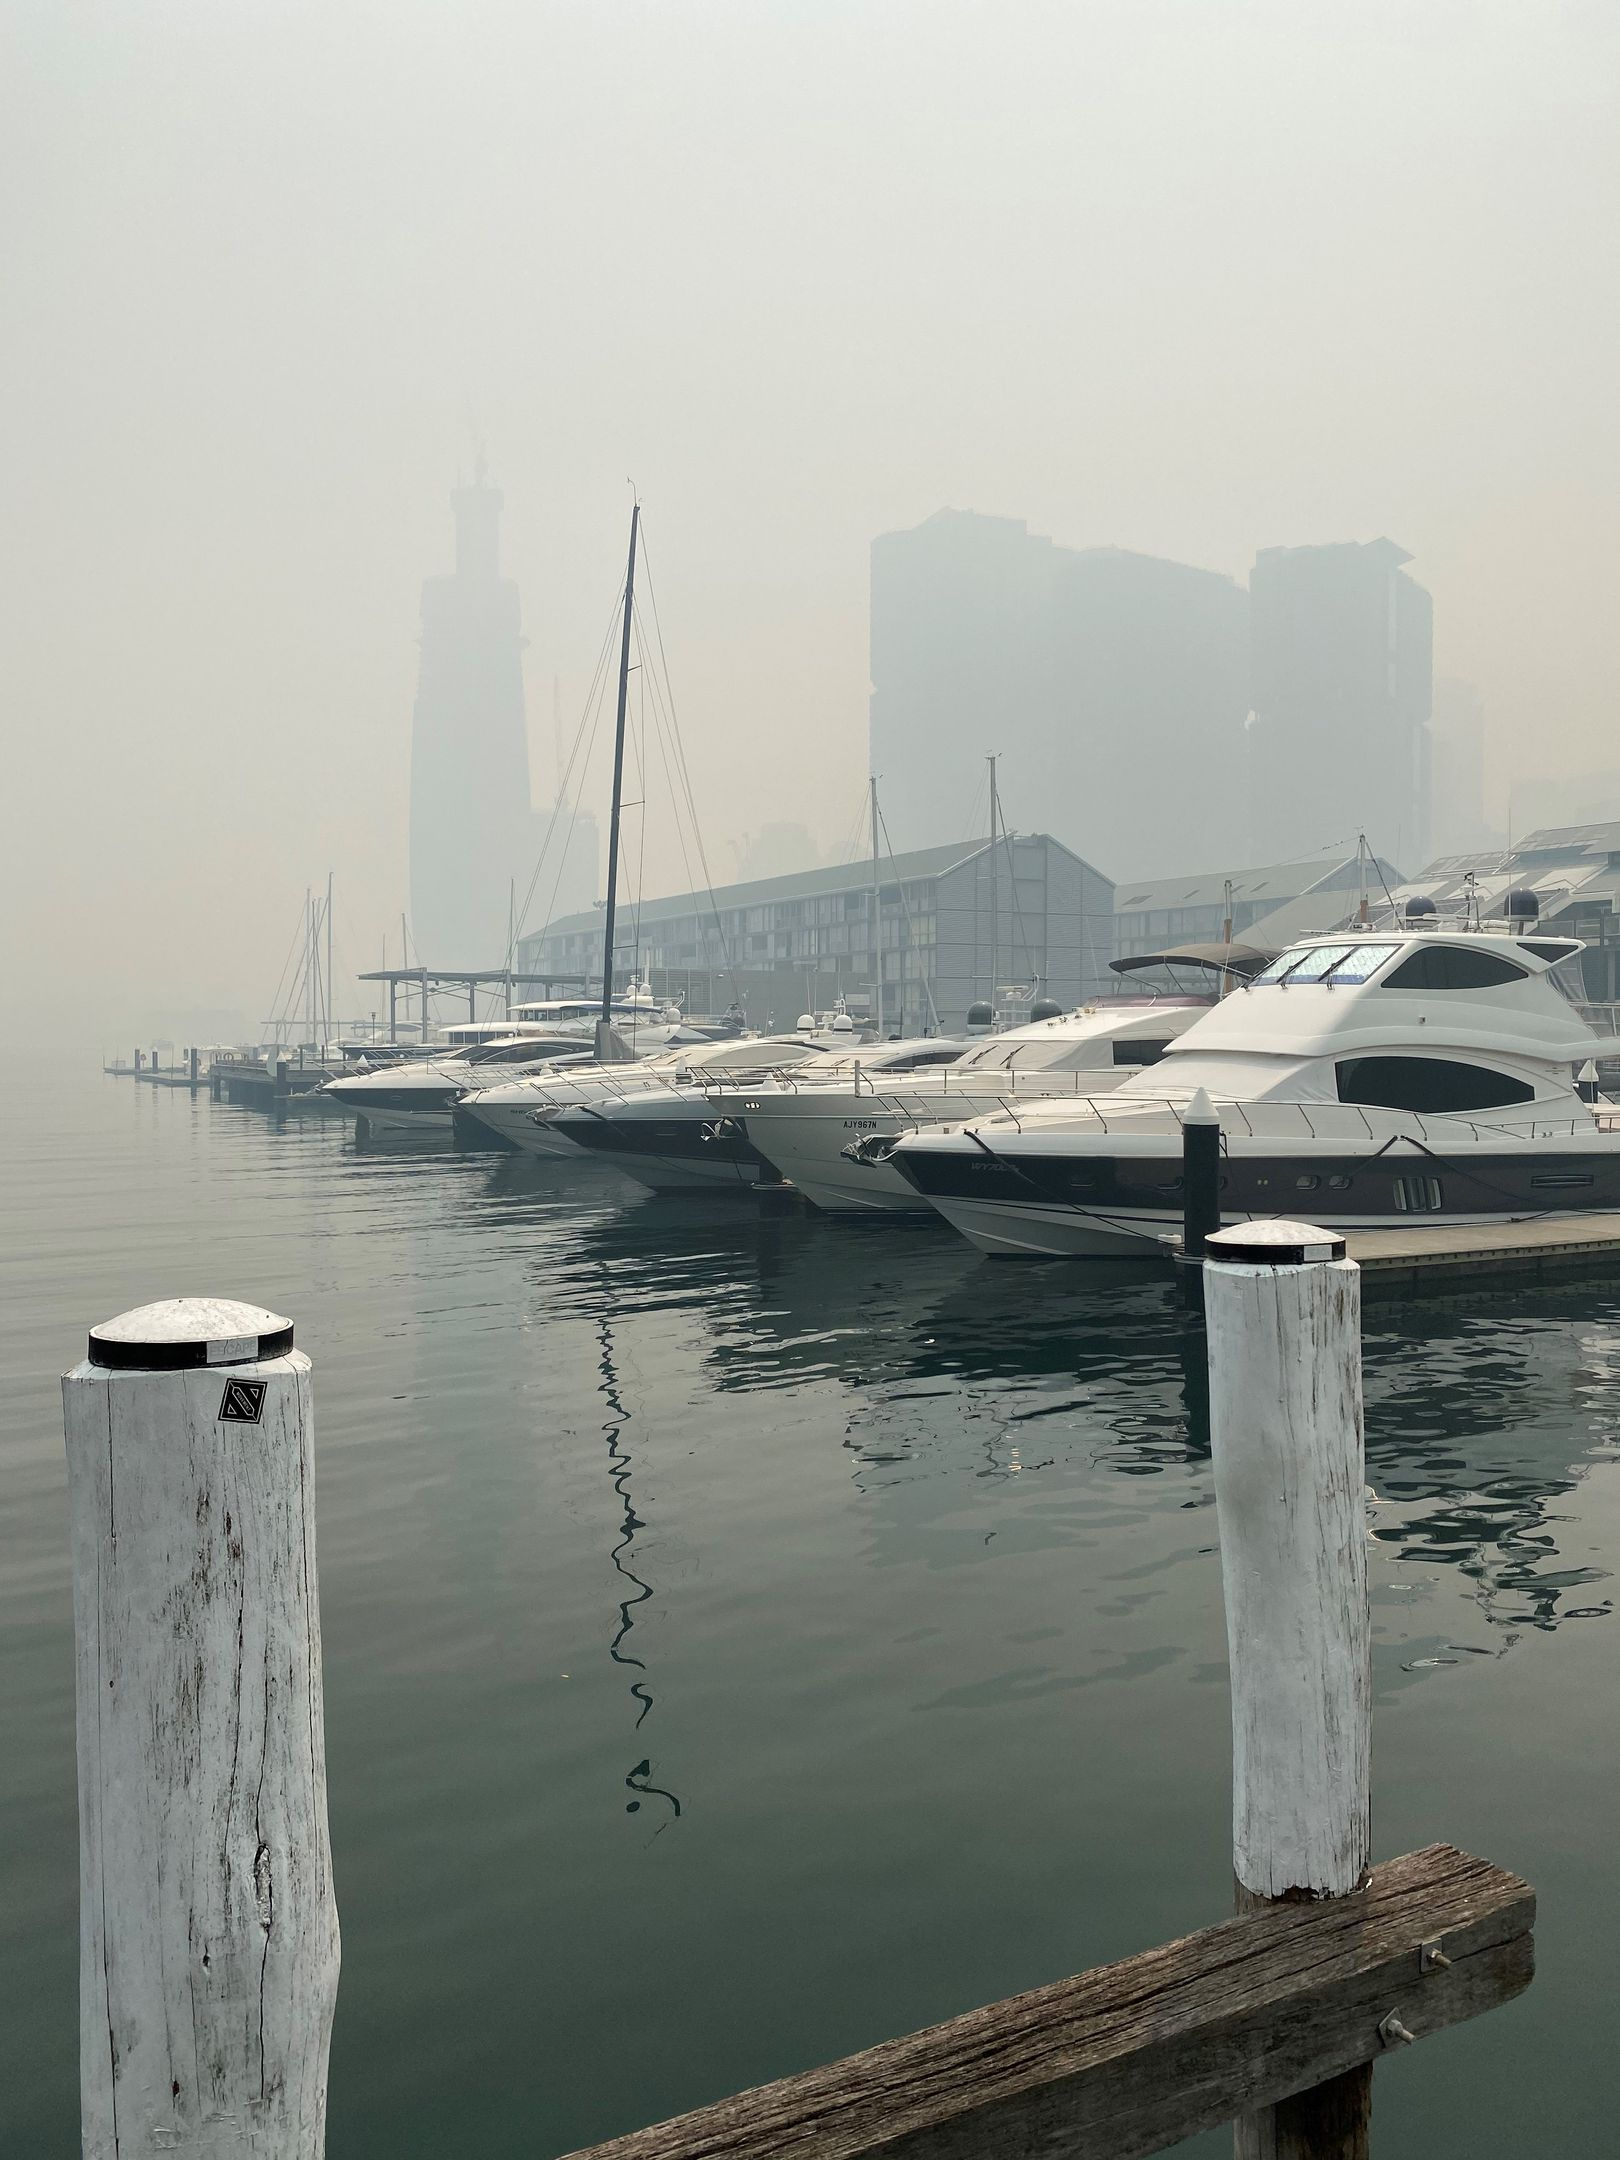 Boats docked in Pyrmont are floating in a sea of smoke.